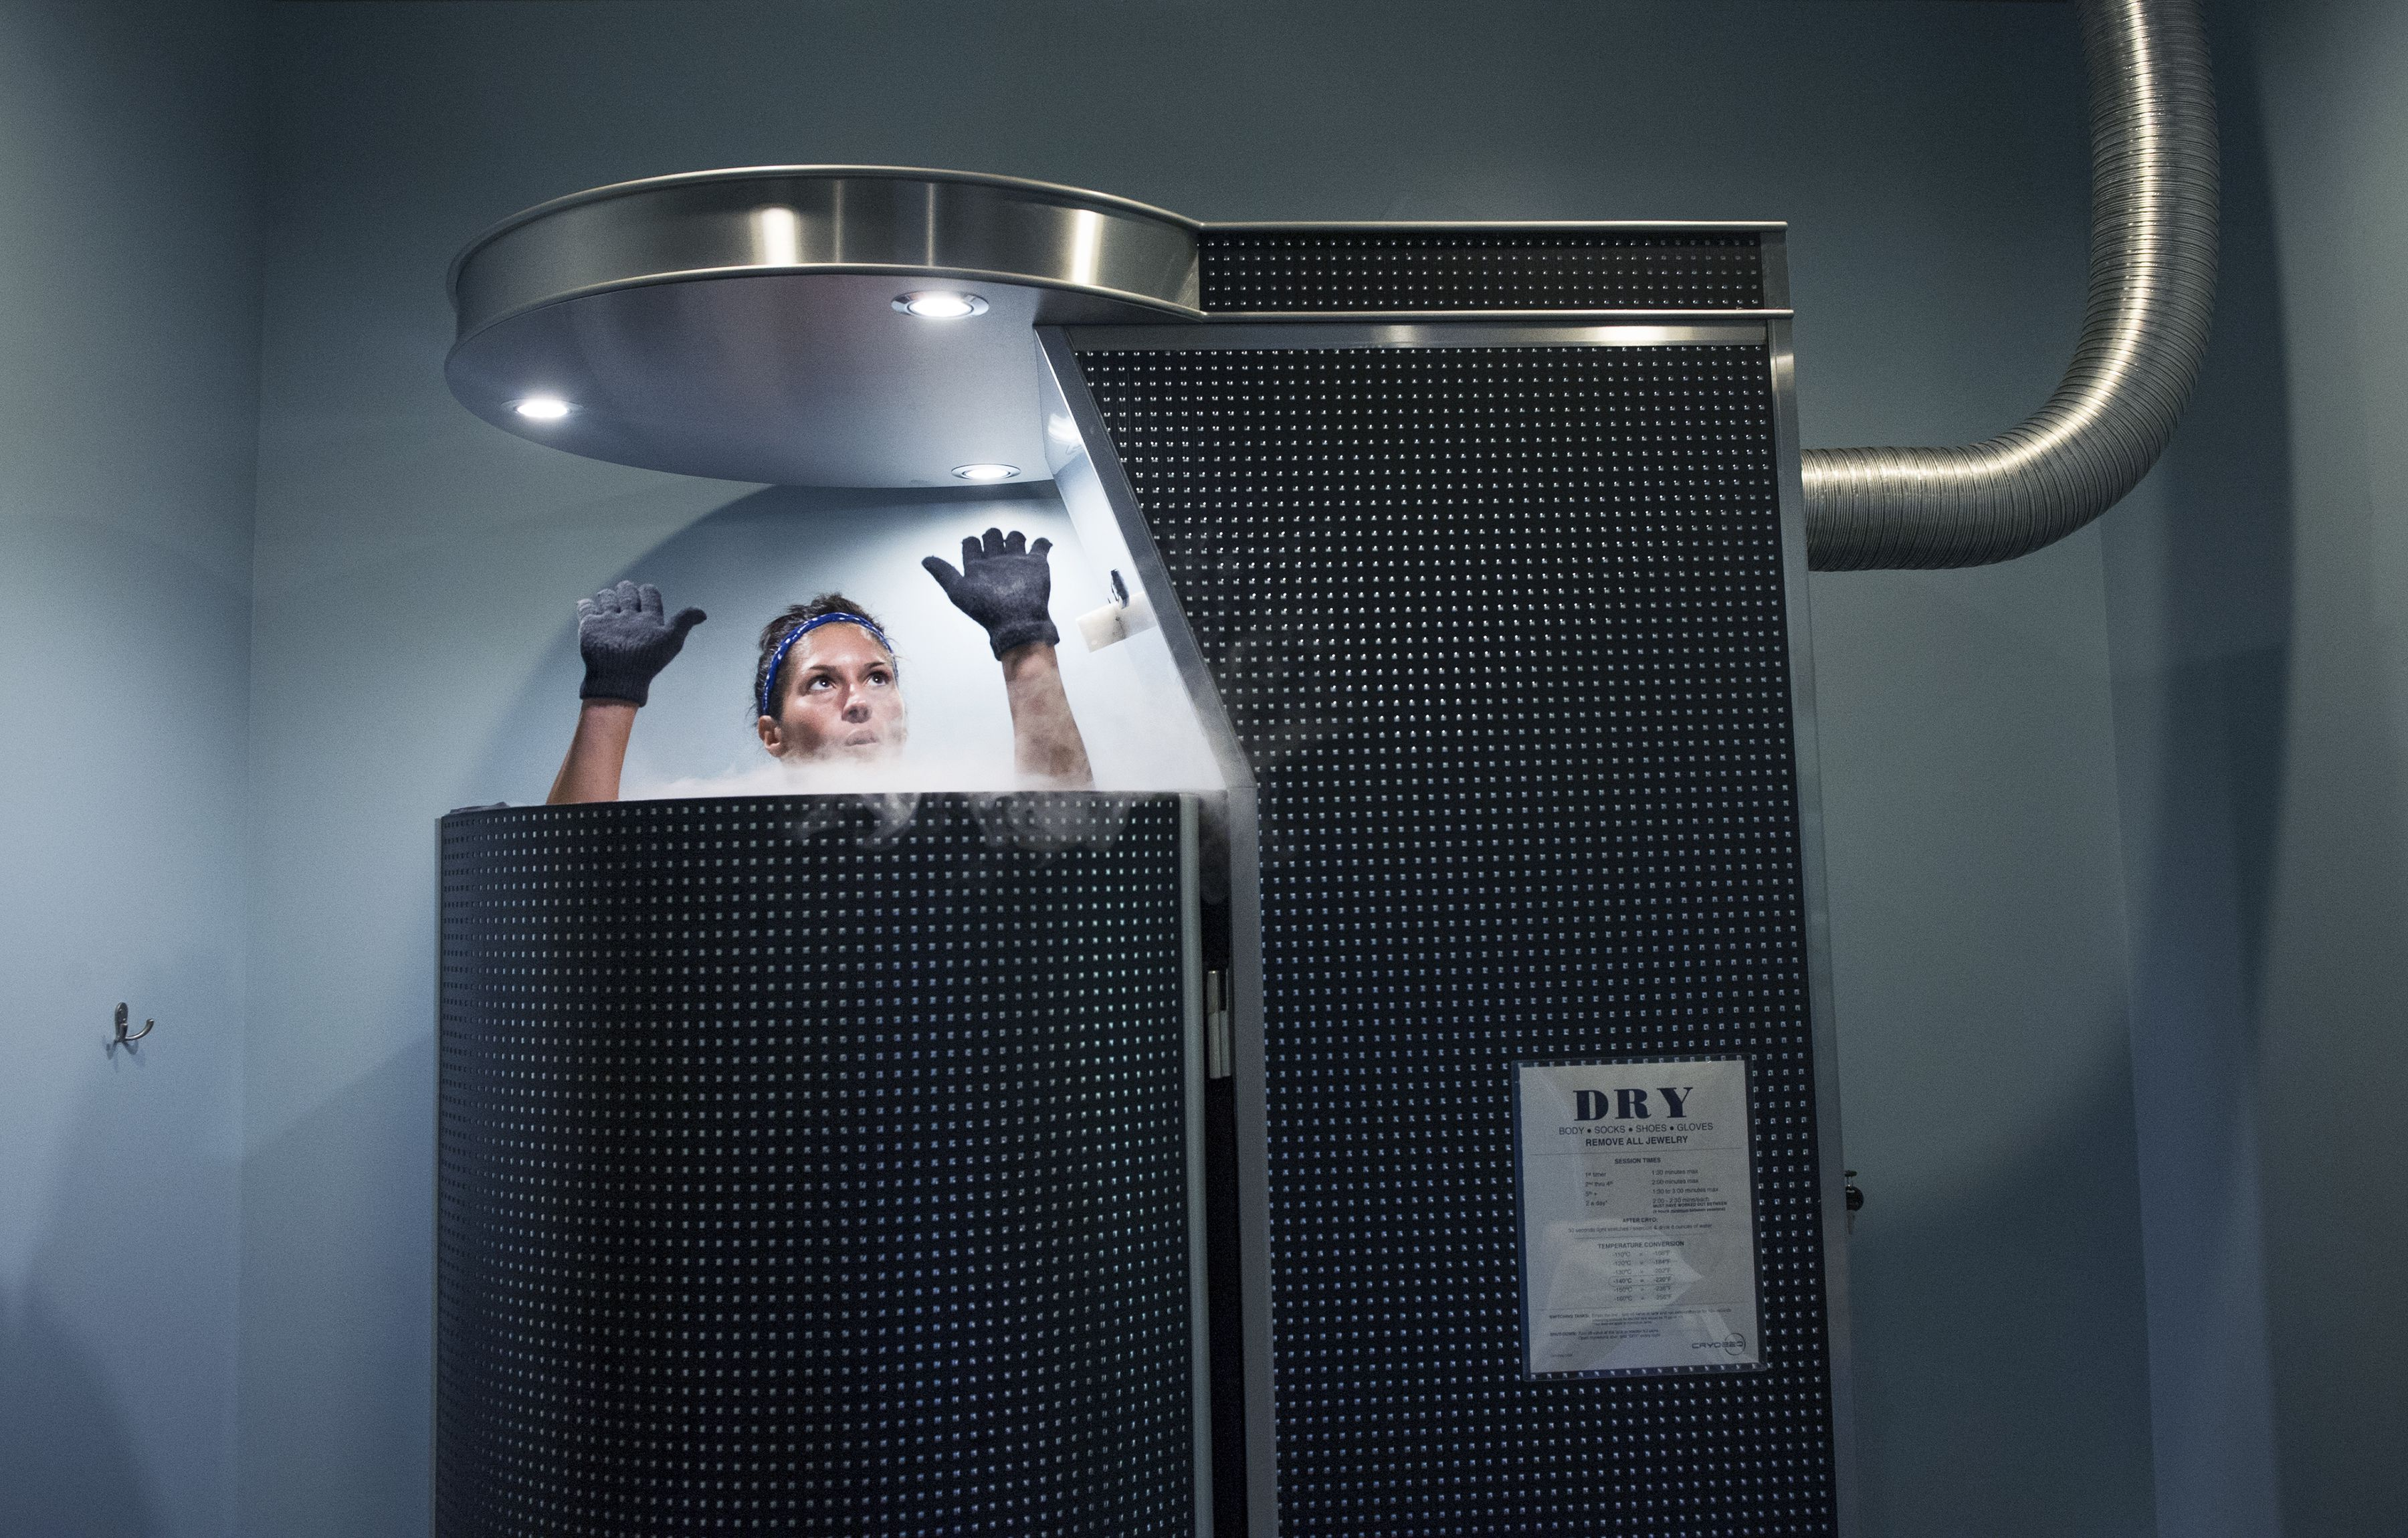 Woman's death at Nevada cryotherapy center raises safety